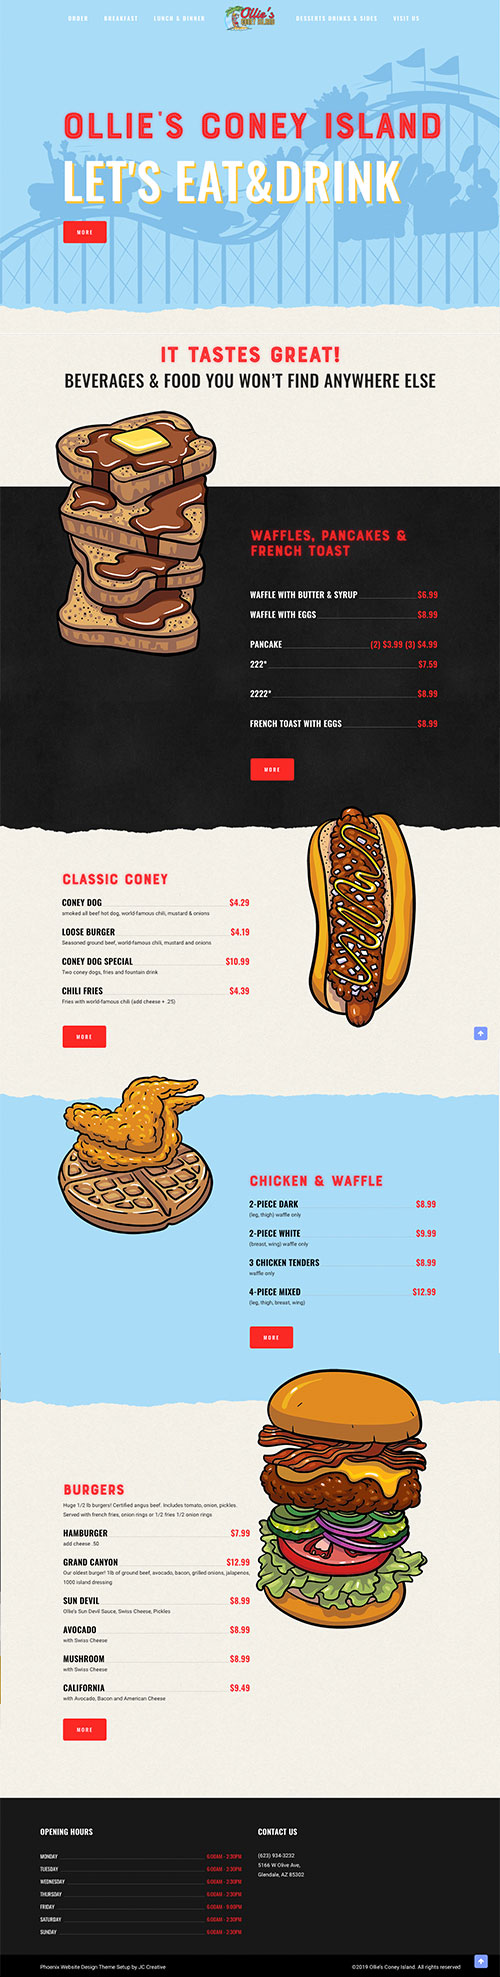 Phoenix Website Design Ollies Coney Island